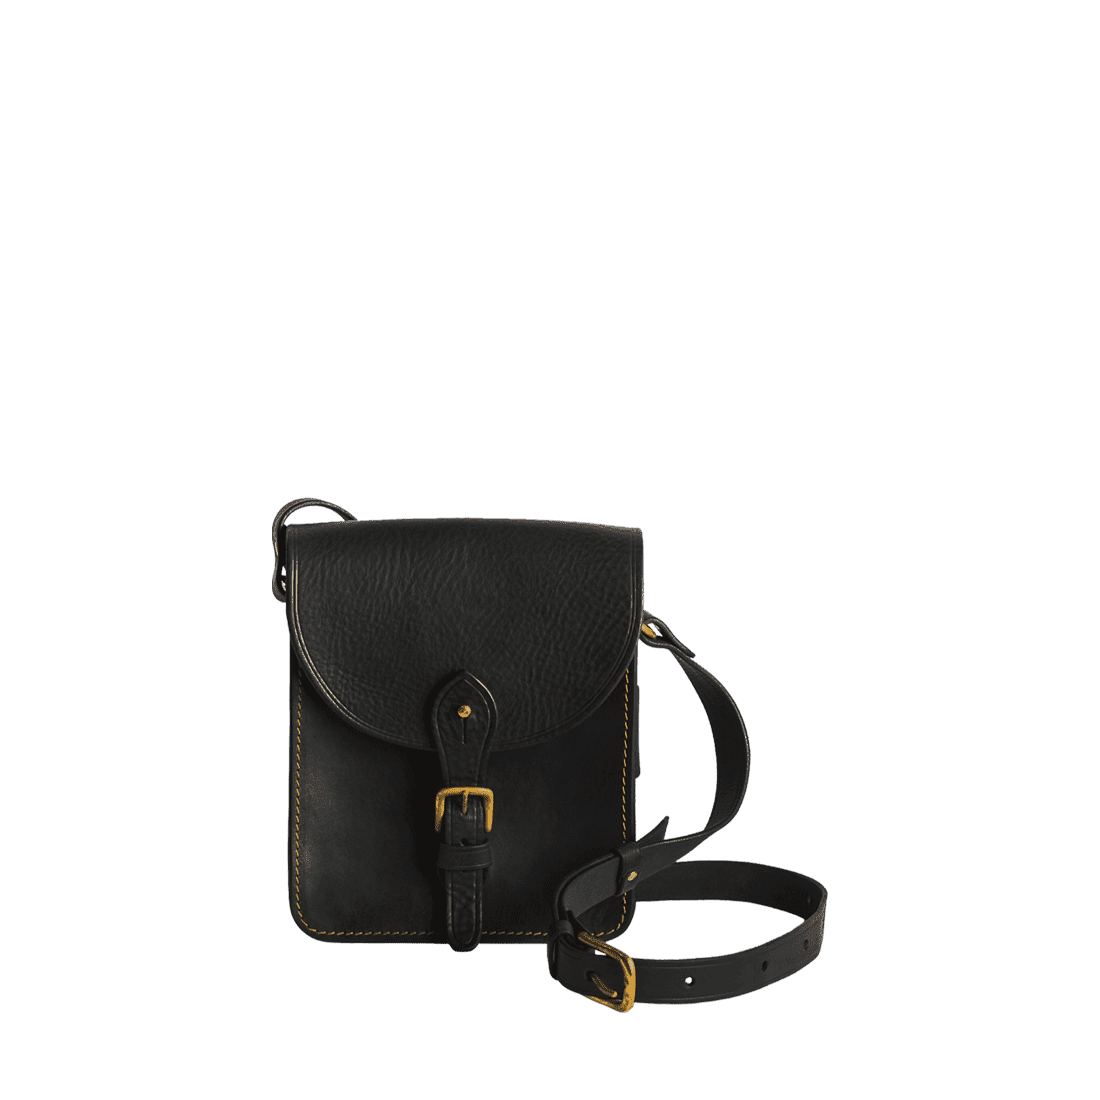 The book bag antique black